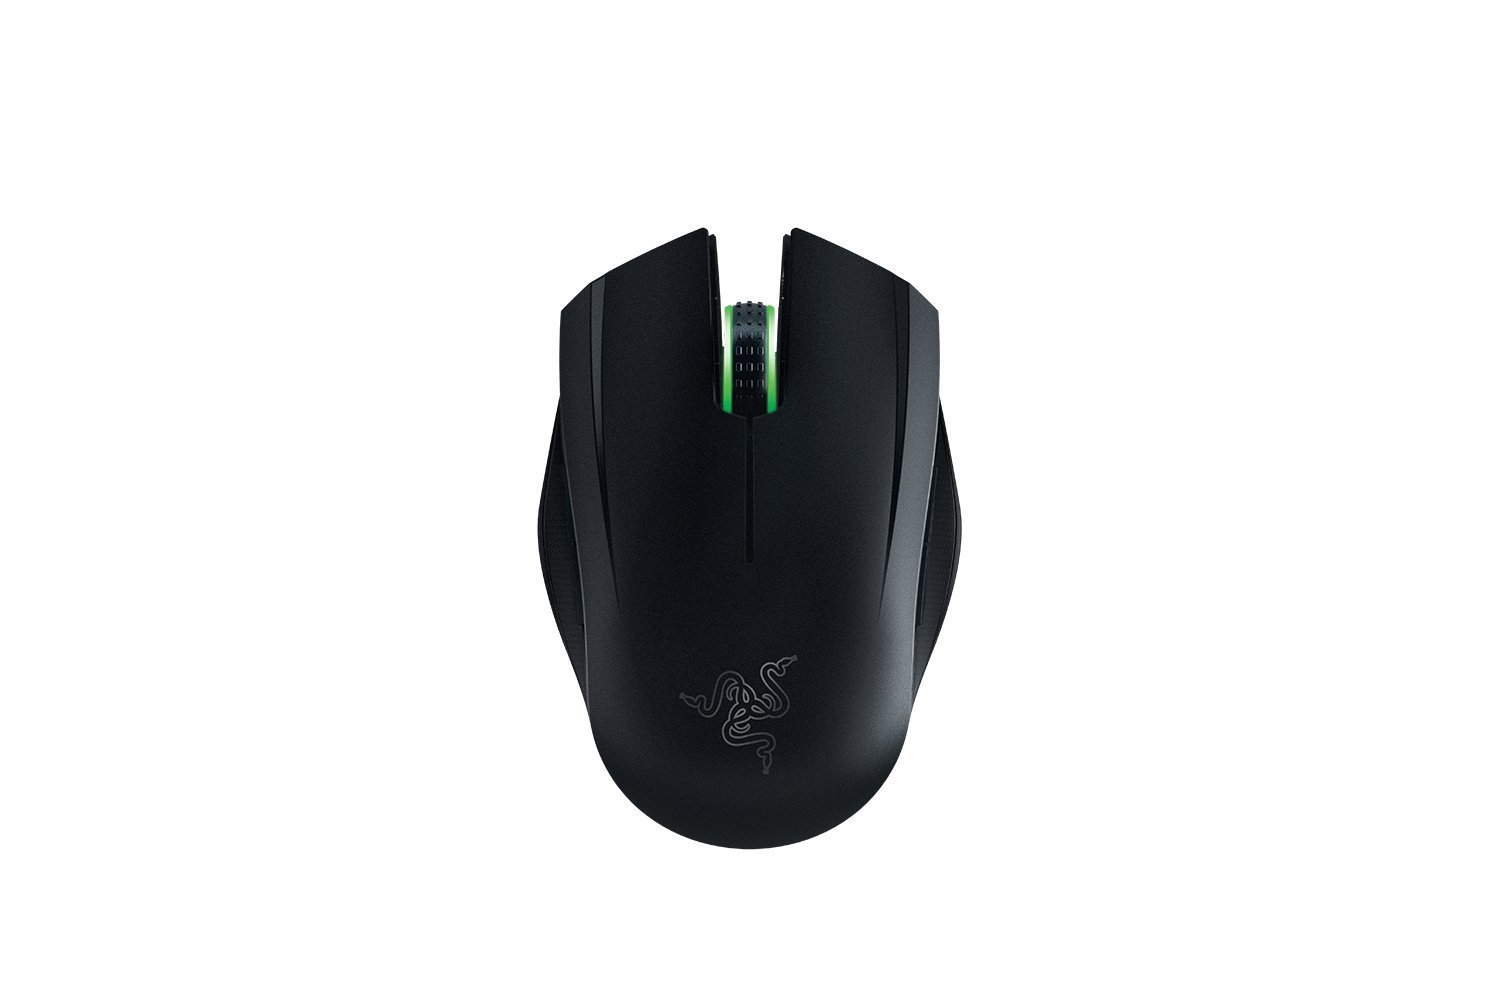 Razer Orochi Gaming Mouse (2015 Edition)